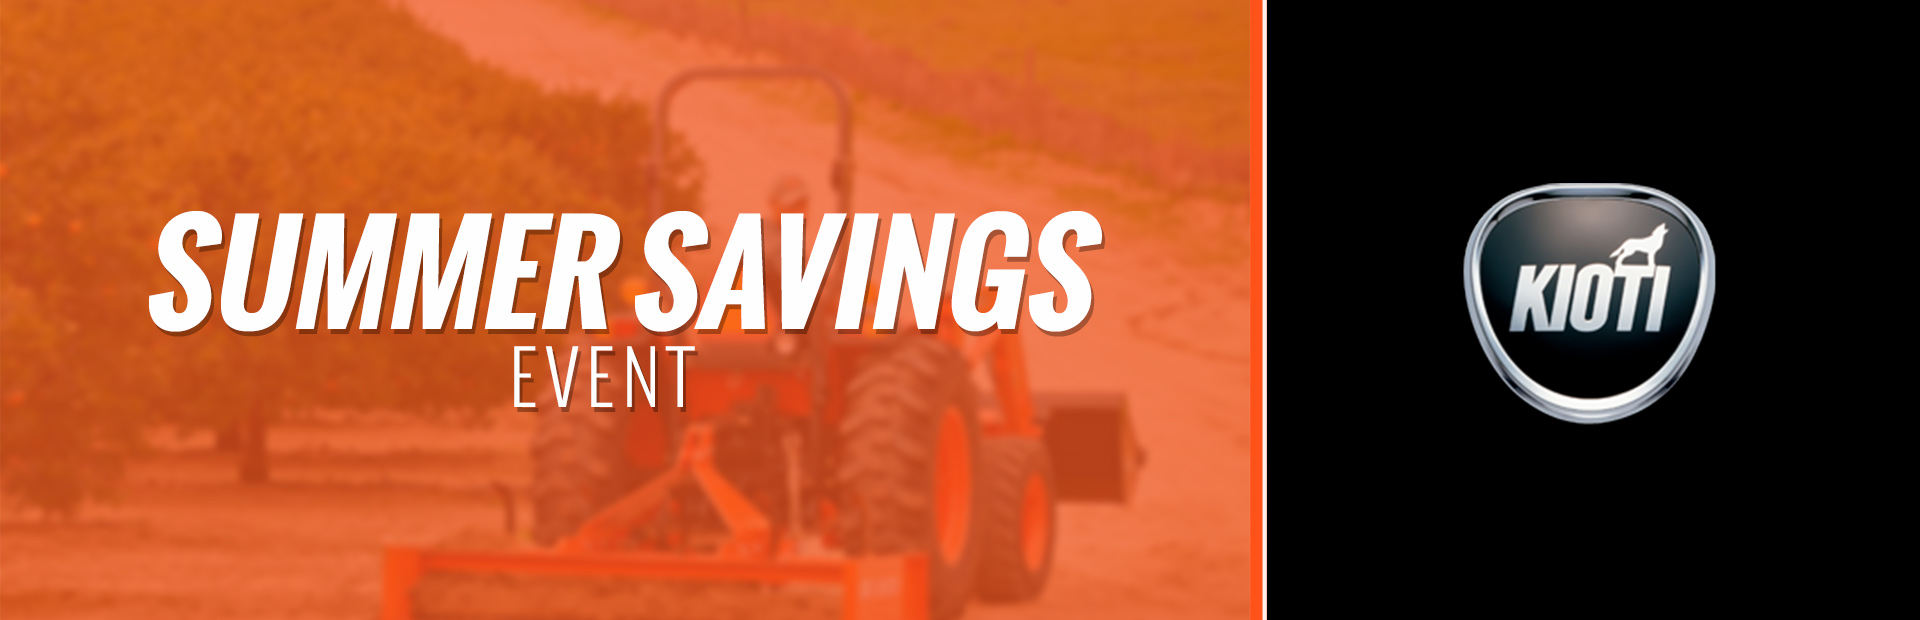 KIOTI: Summer Savings Event